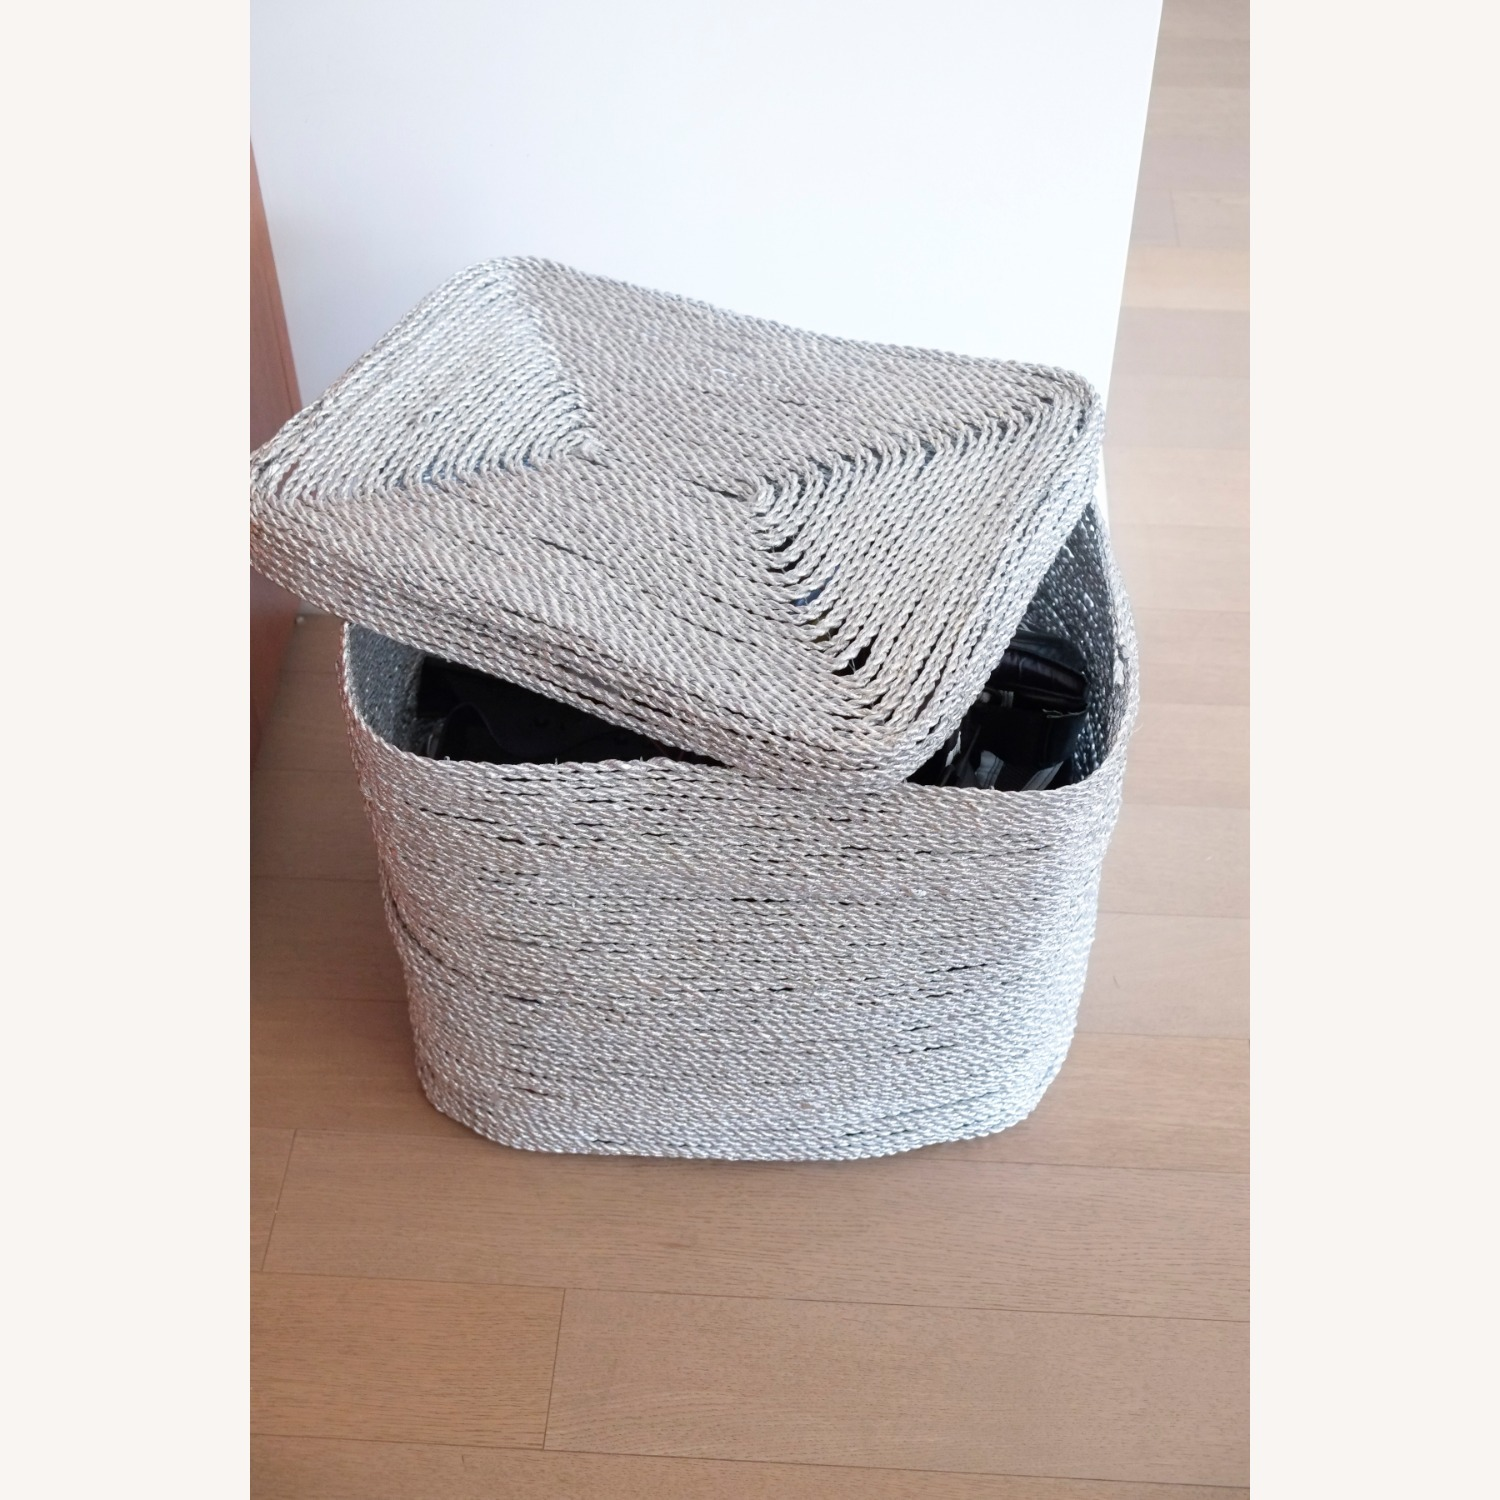 West Elm Metallic Silver Woven Hamper - image-1